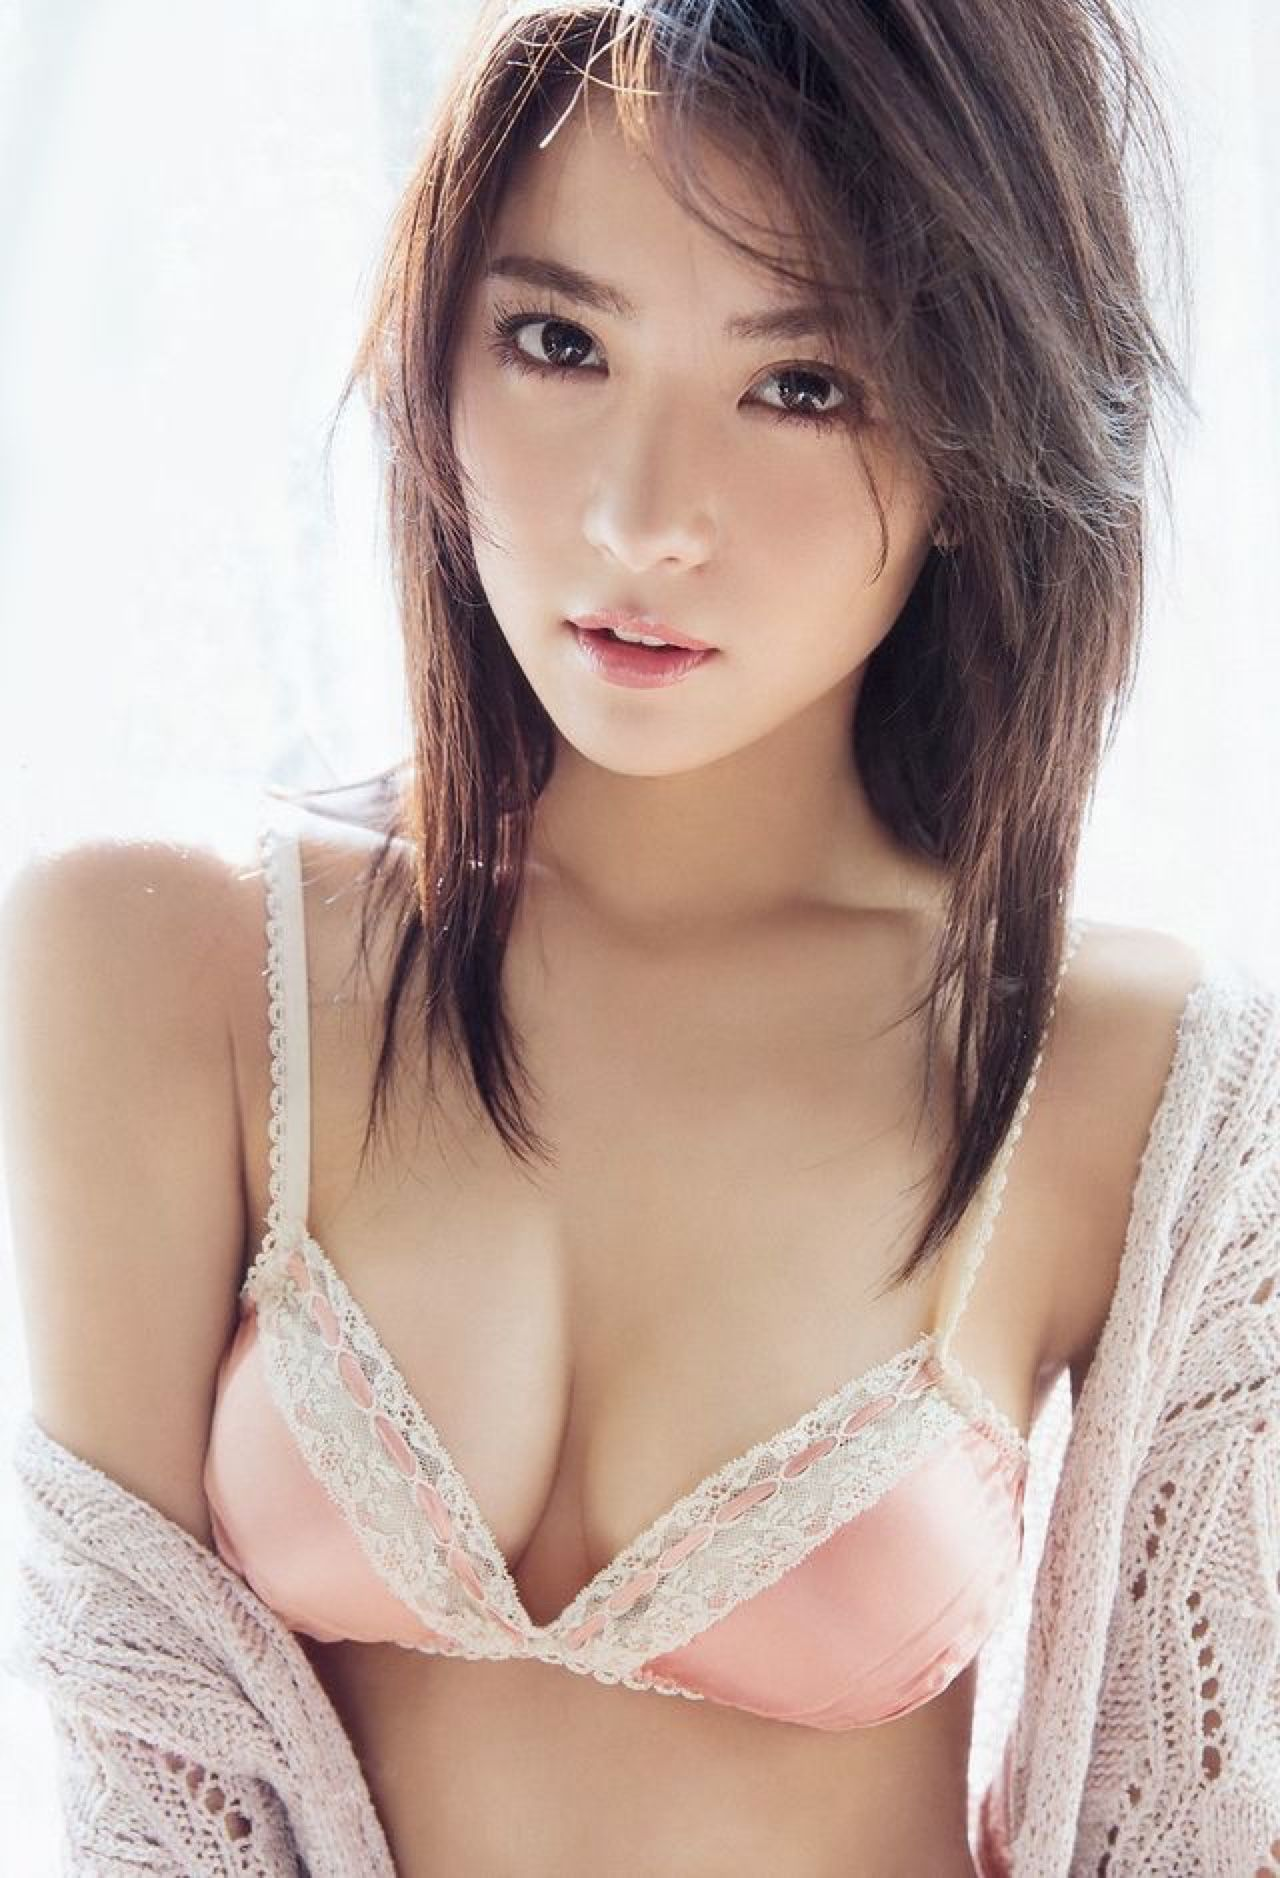 japanese pop porn - The best in Asian models, celebs, k-pop, j-pop girls and beautiful babes!  We are Porn Free! This Blog is part of The MLZ Network! MLZMEDIA.COM